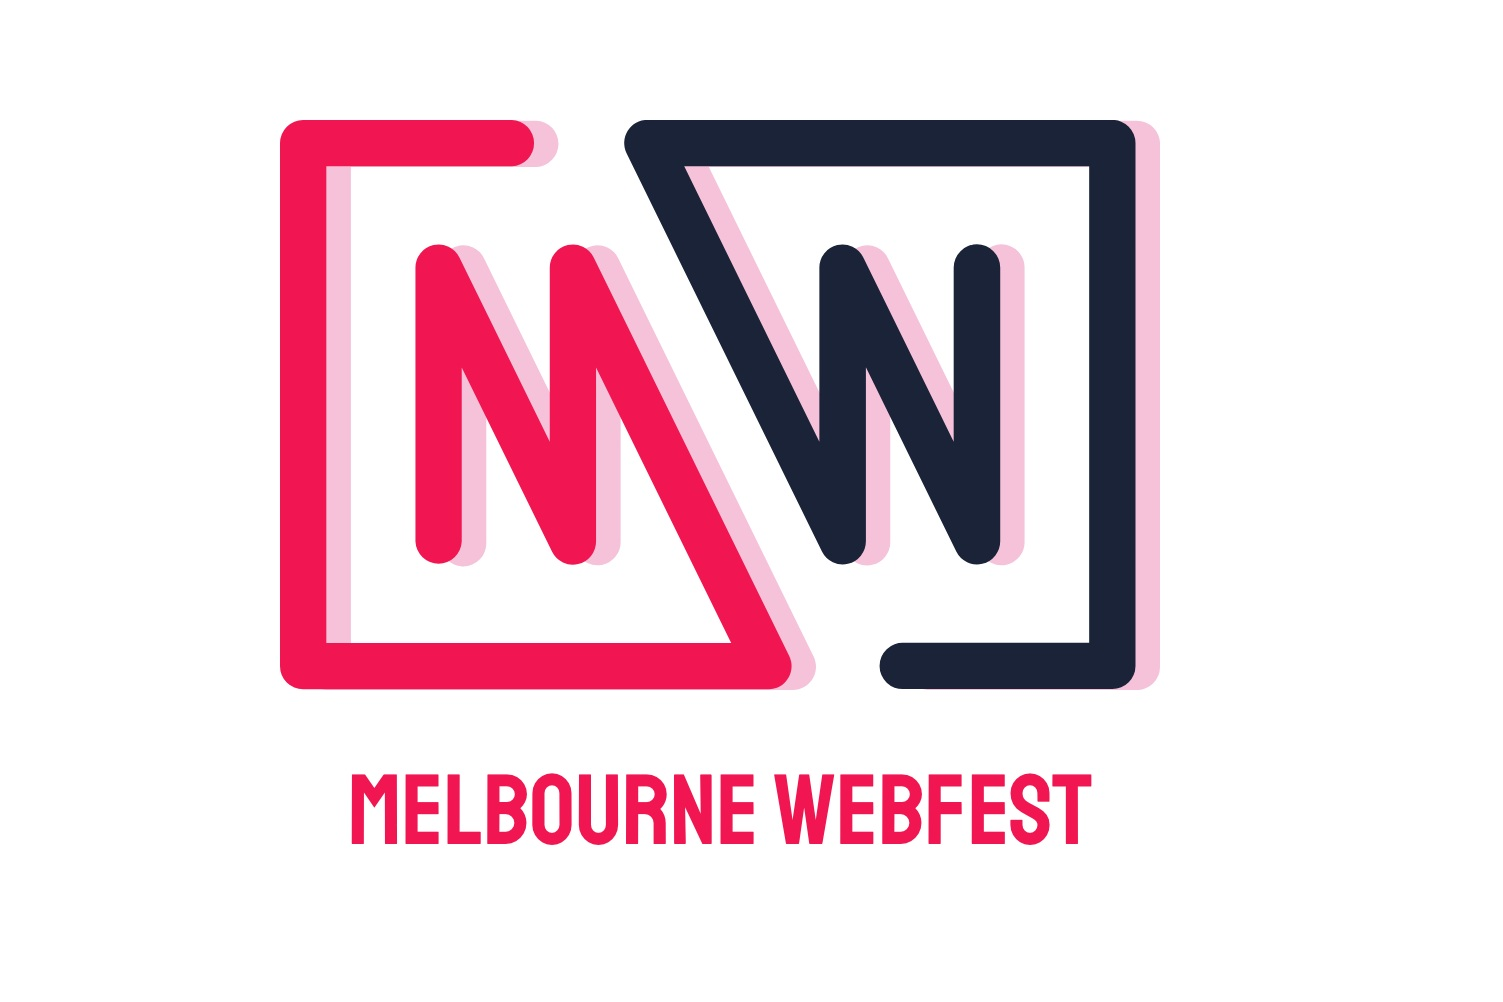 Officially Selected for Melbourne Webfest in Student Category - LEARN MORE